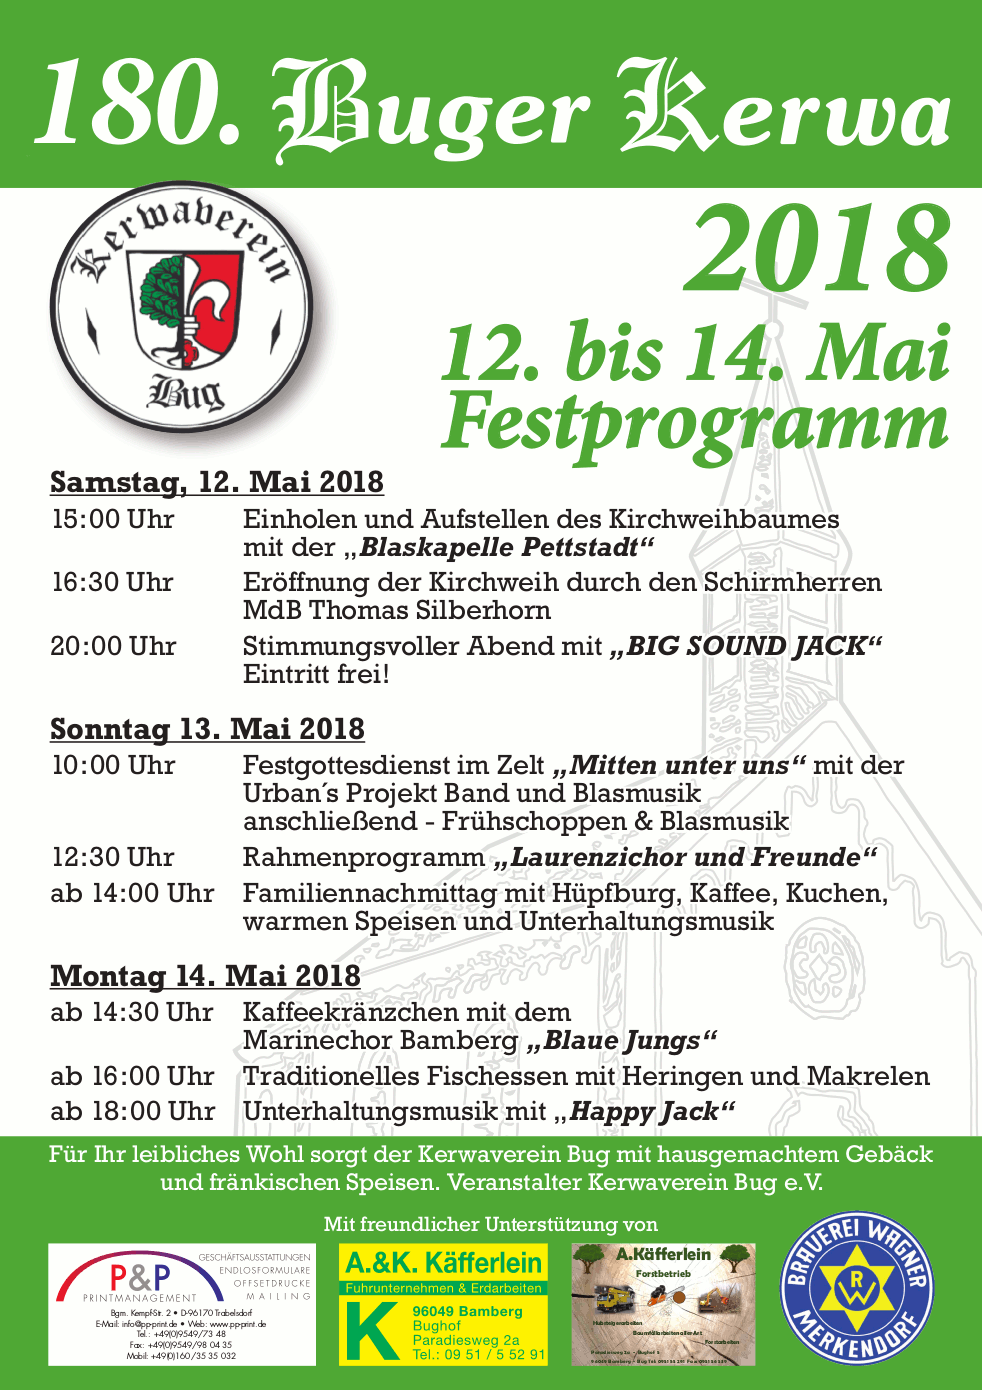 https://kerwaverein-bug.de/wp/wp-content/uploads/2018/04/Programm-2018.png